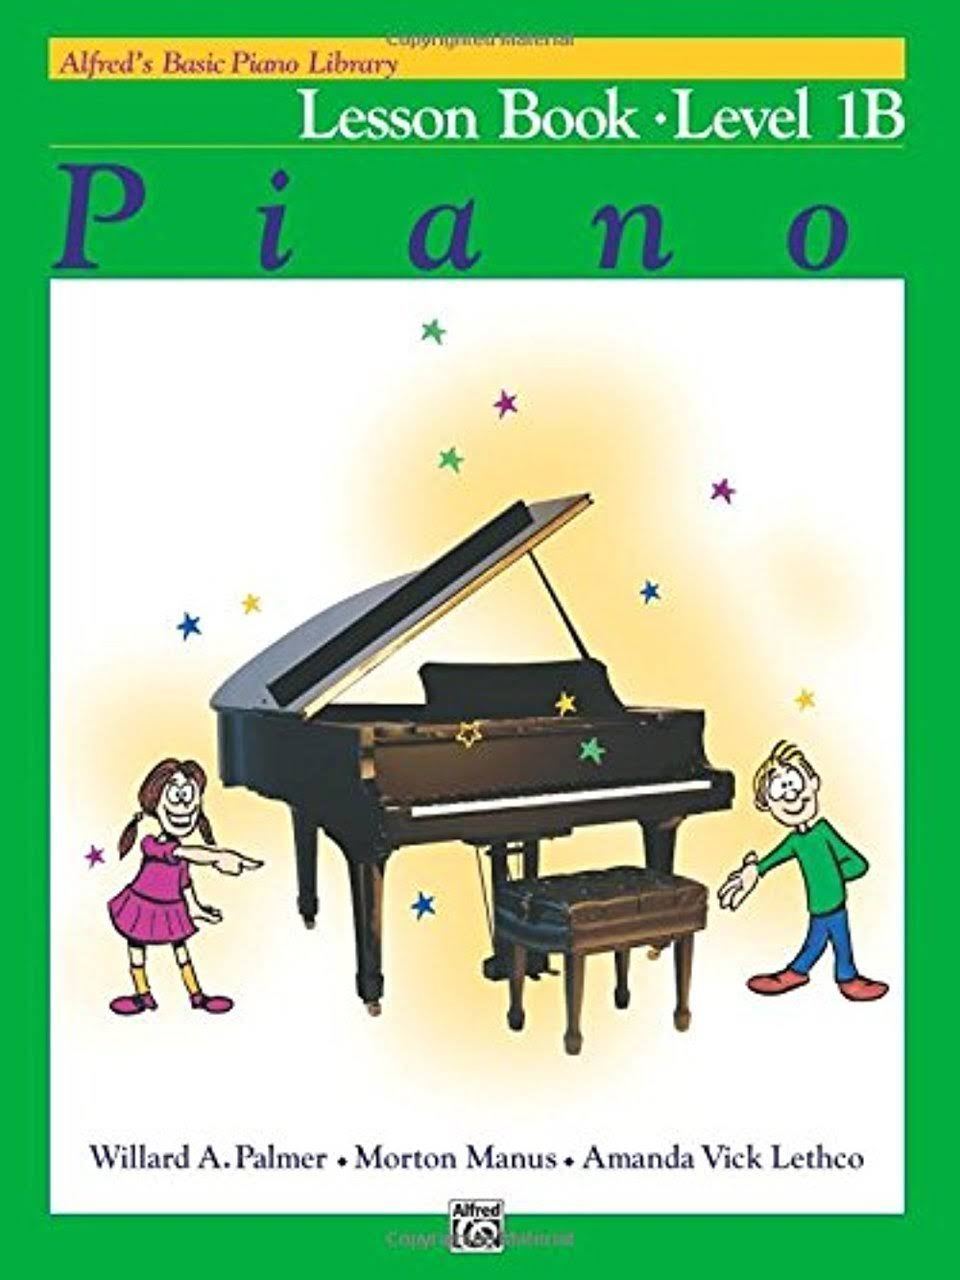 Alfred's Basic Piano Library - Alfreds Theory Book Level 1B